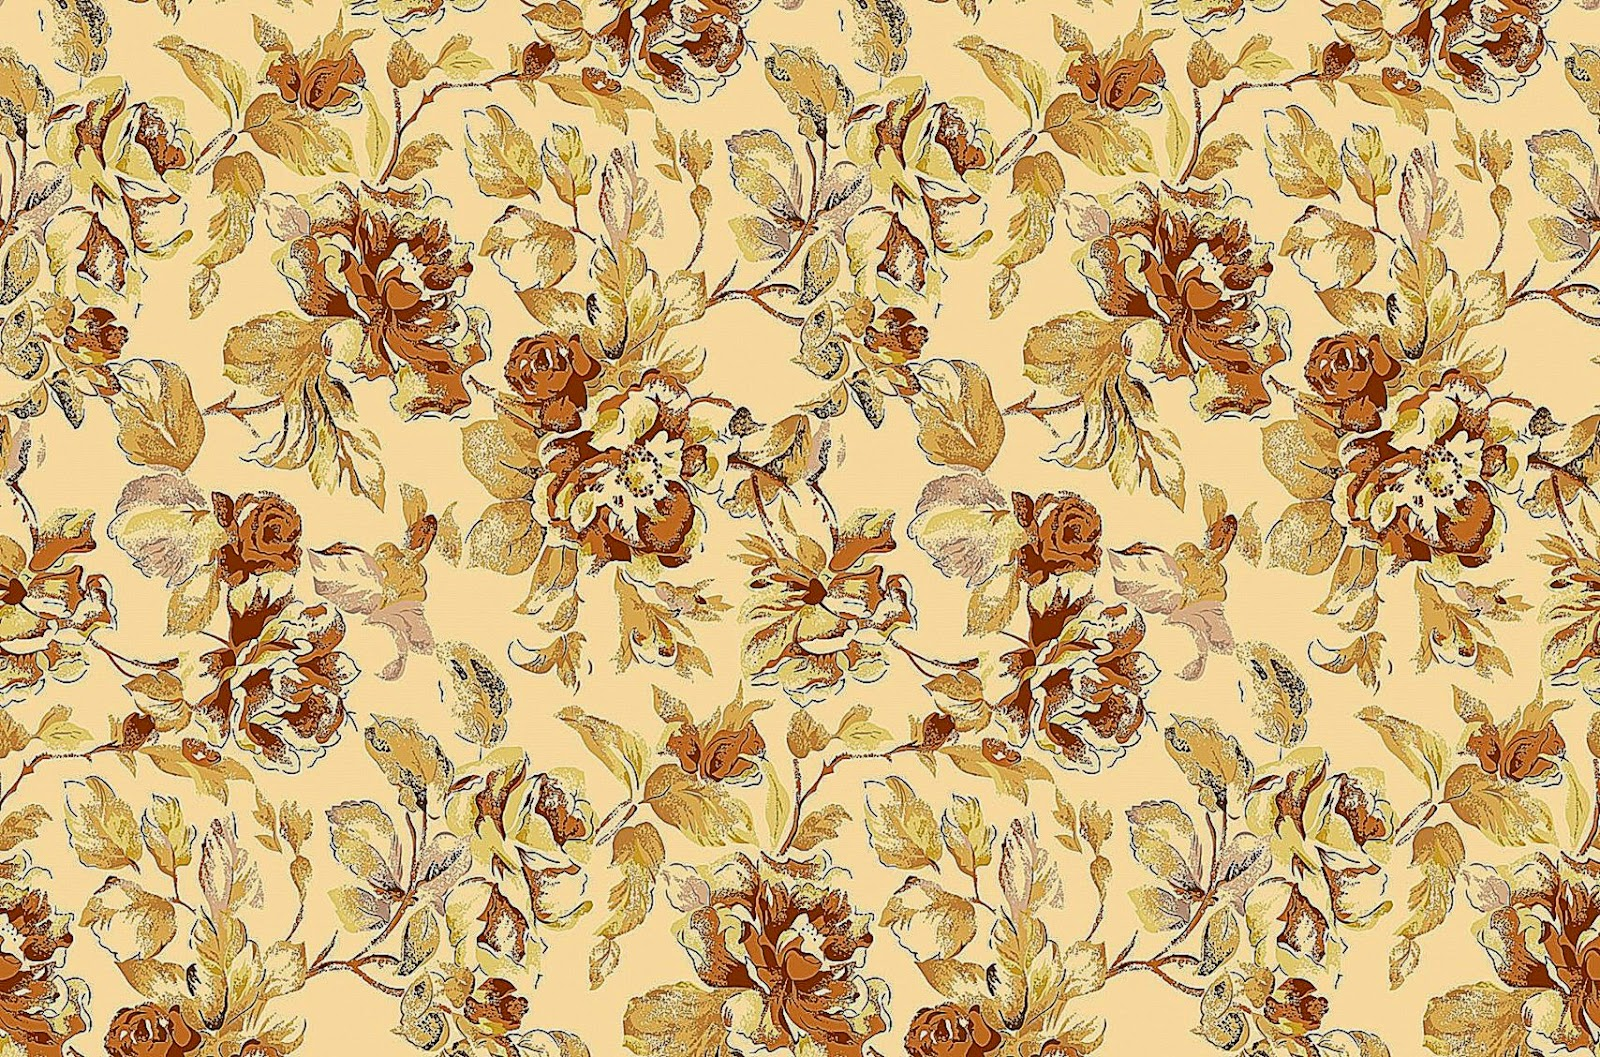 Cool Hd Wallpapers Vintage Floral Wallpaper Pattern